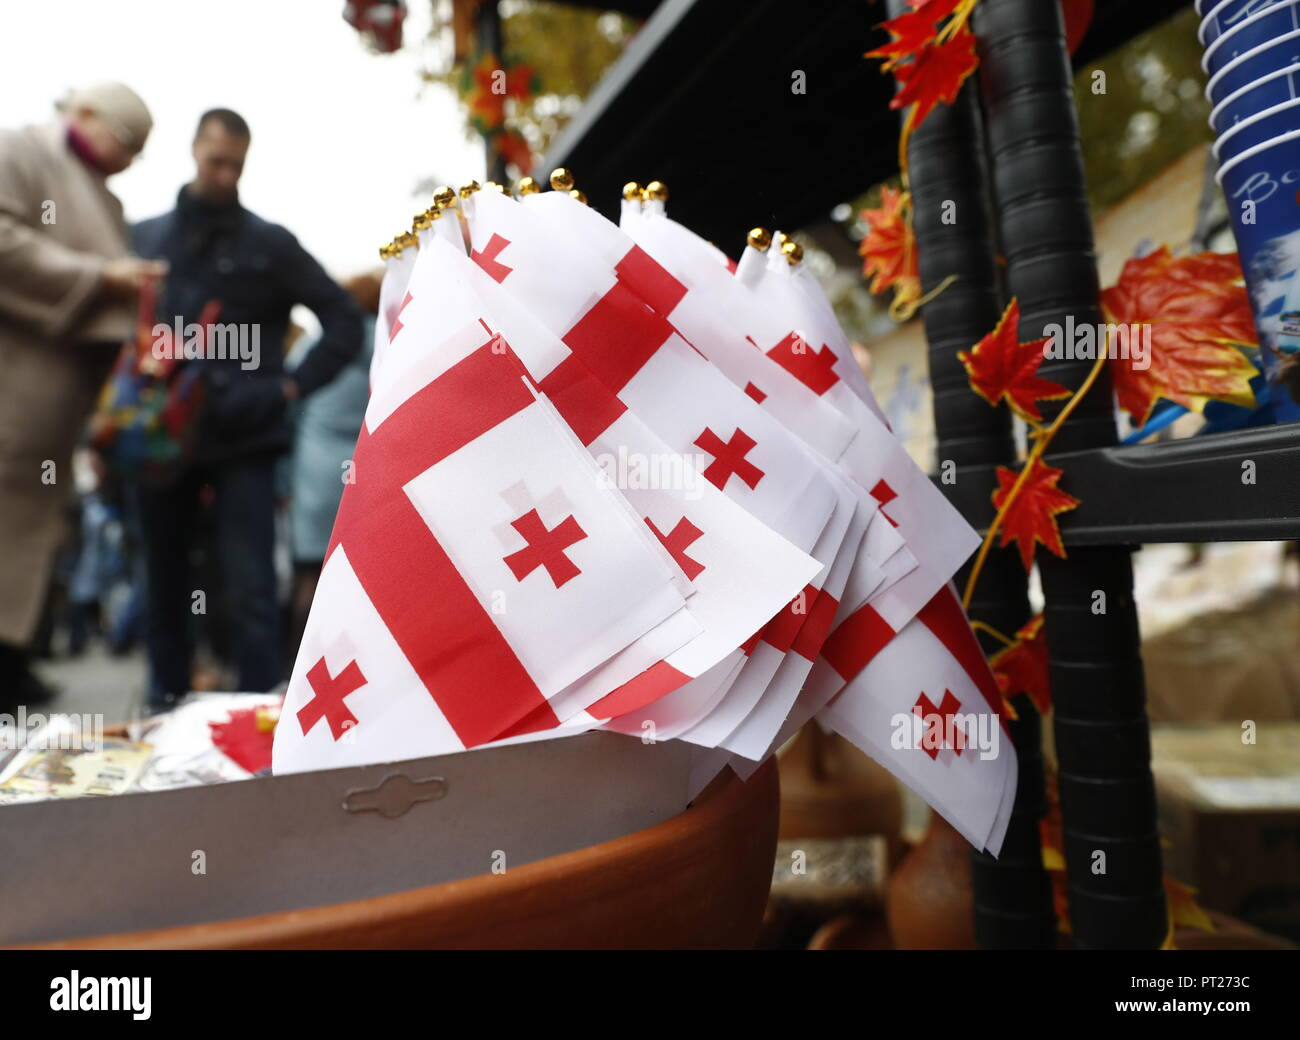 Moscow, Russia. 06th Oct, 2018. MOSCOW, RUSSIA - OCTOBER 6, 2018: Georgian flags at the annual 2018 Tbilisoba Festival of Georgian Culture at the Moscow Hermitage Garden. Artyom Geodakyan/TASS Credit: ITAR-TASS News Agency/Alamy Live News Stock Photo